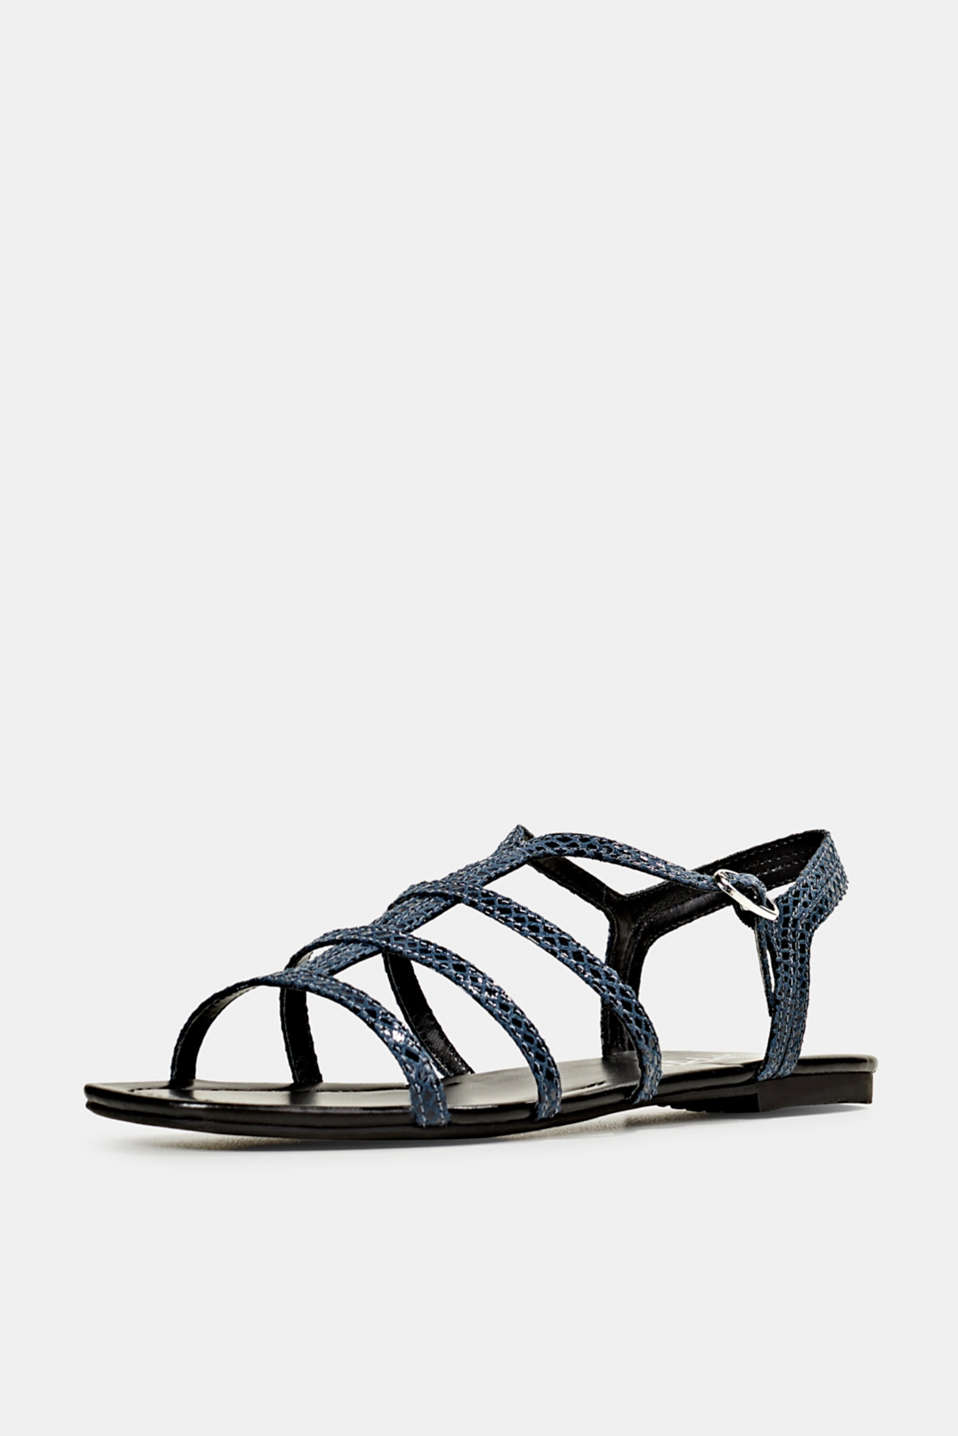 Snakeskin-effect sandals, NAVY, detail image number 1